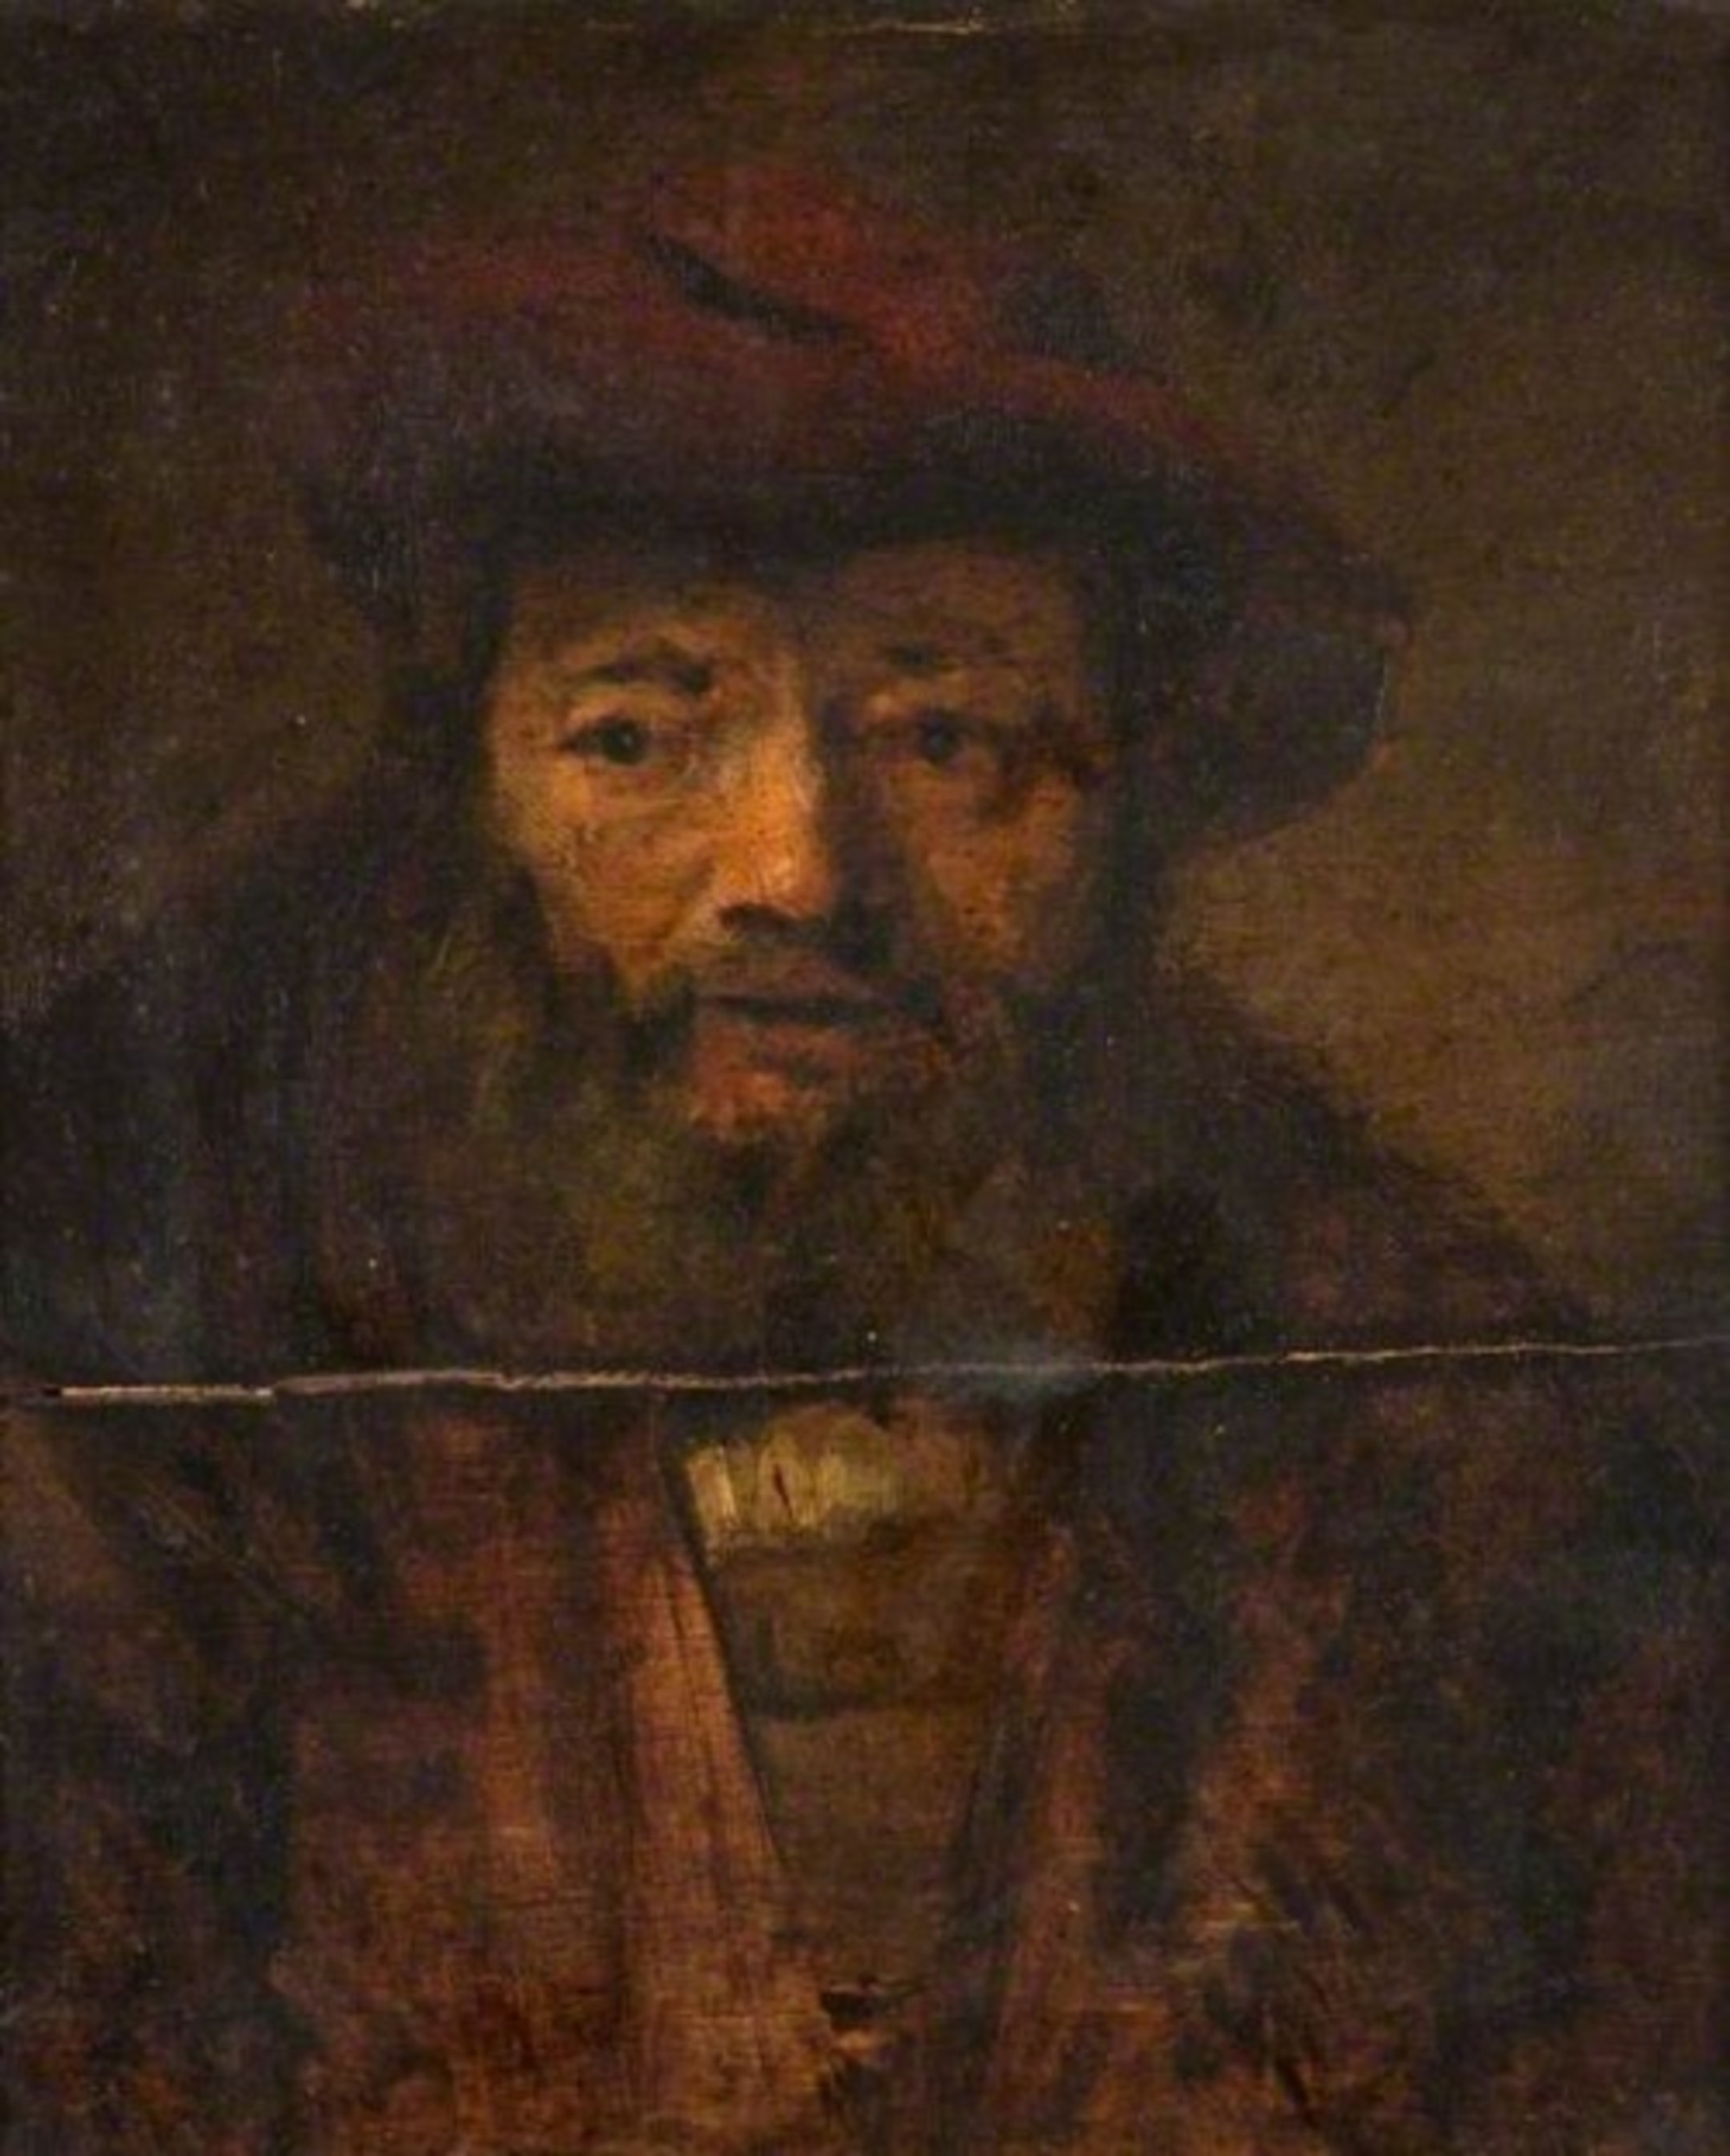 Rembrandt---Head-of-a-Bearded-Man.jpg